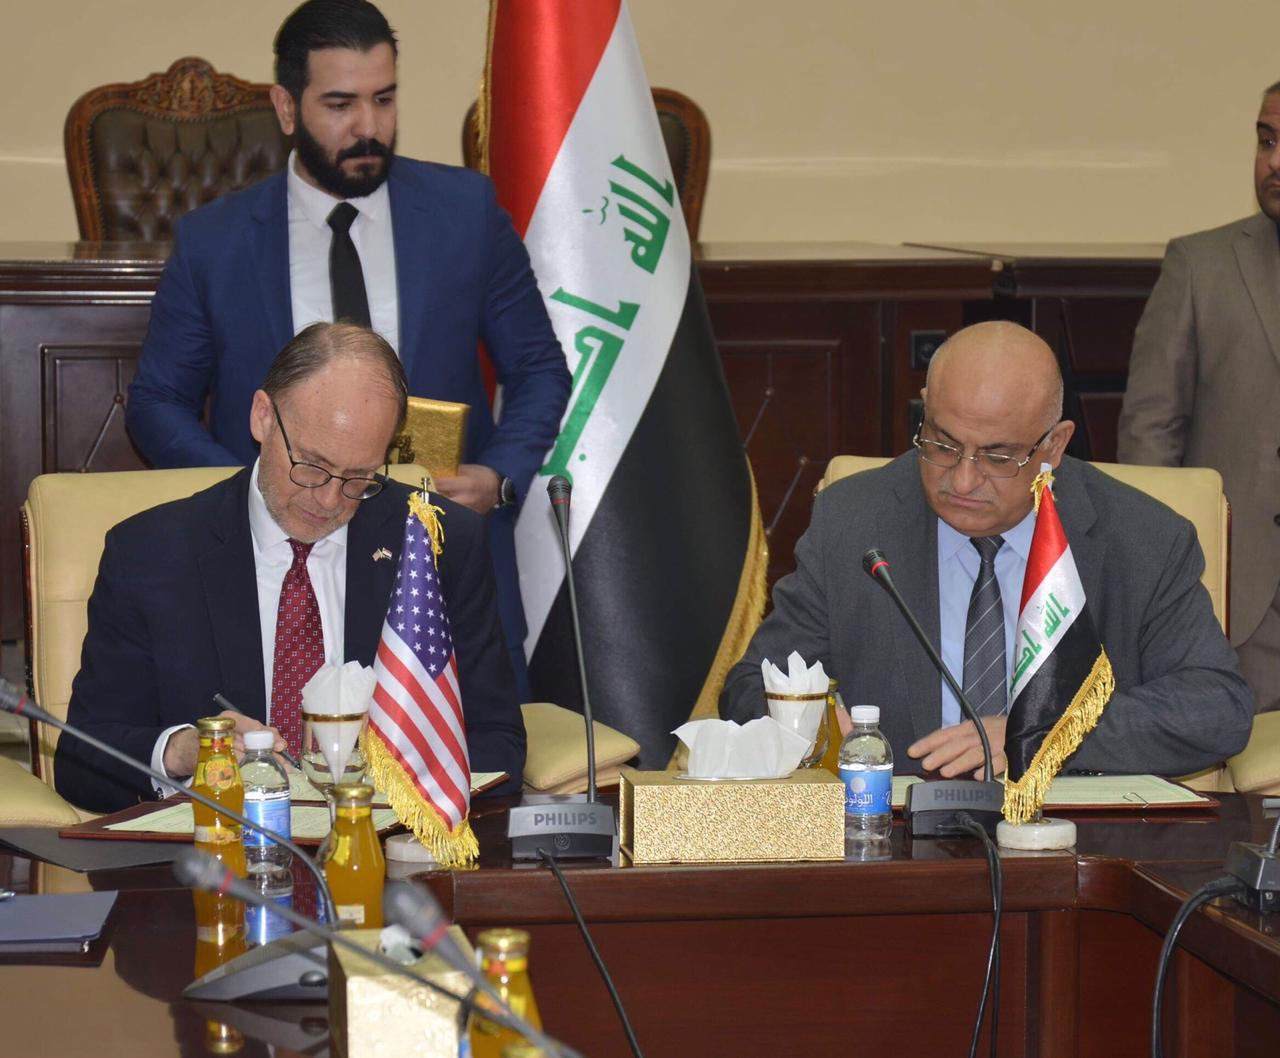 Two men sit at desk signing documents, US and Iraq flags in background